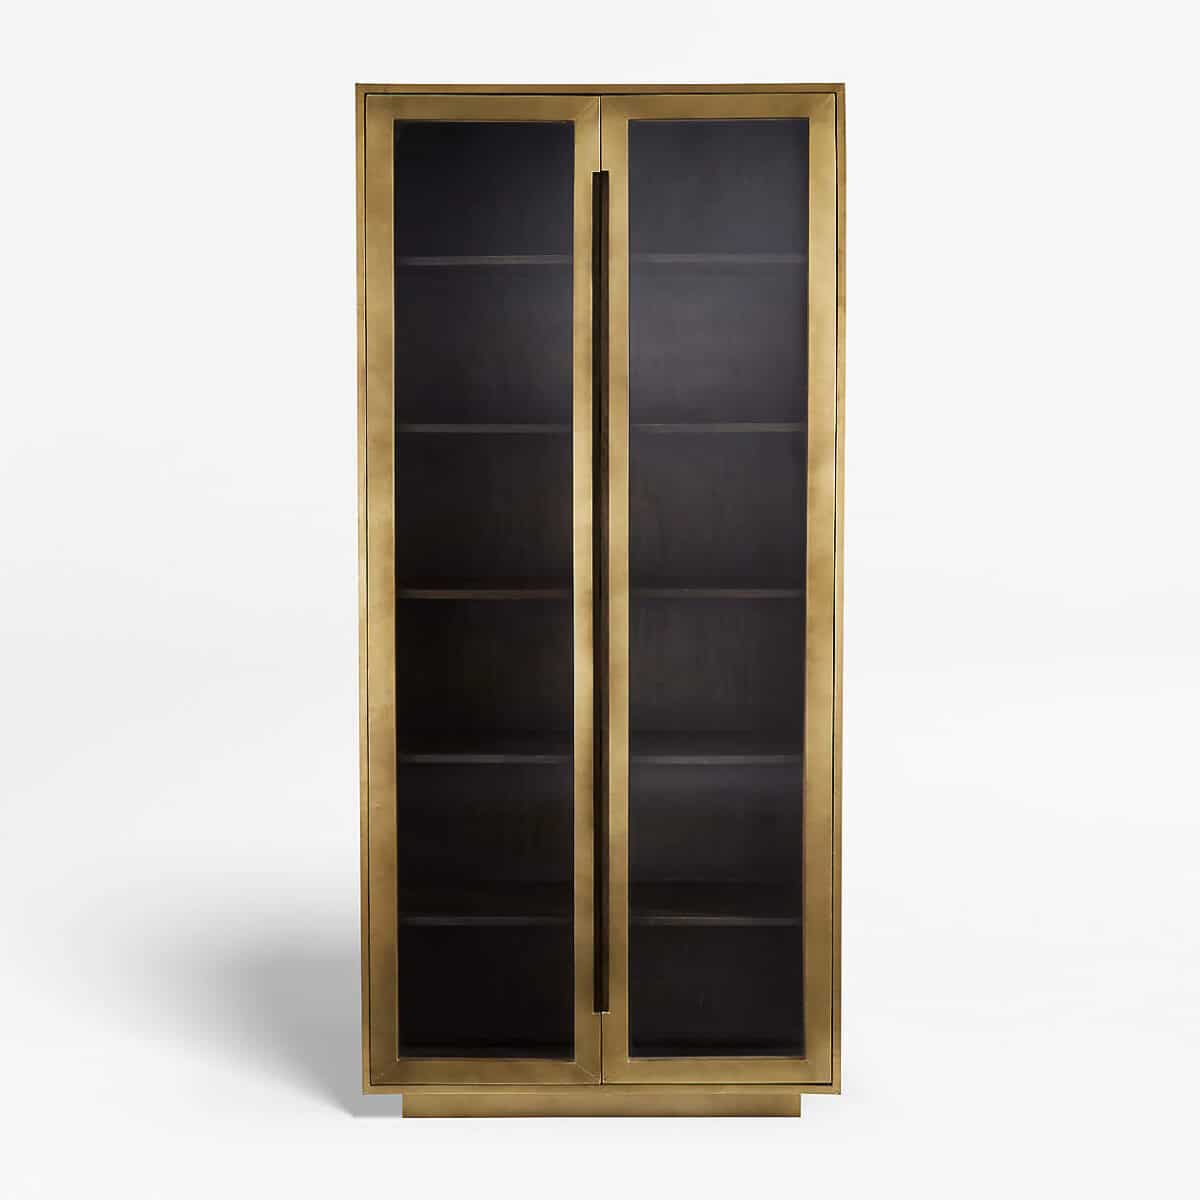 The Best Modern Glass Door Cabinets, Gold Display Cabinets and Arched Cabinets in 2021 from Crate & Barrel